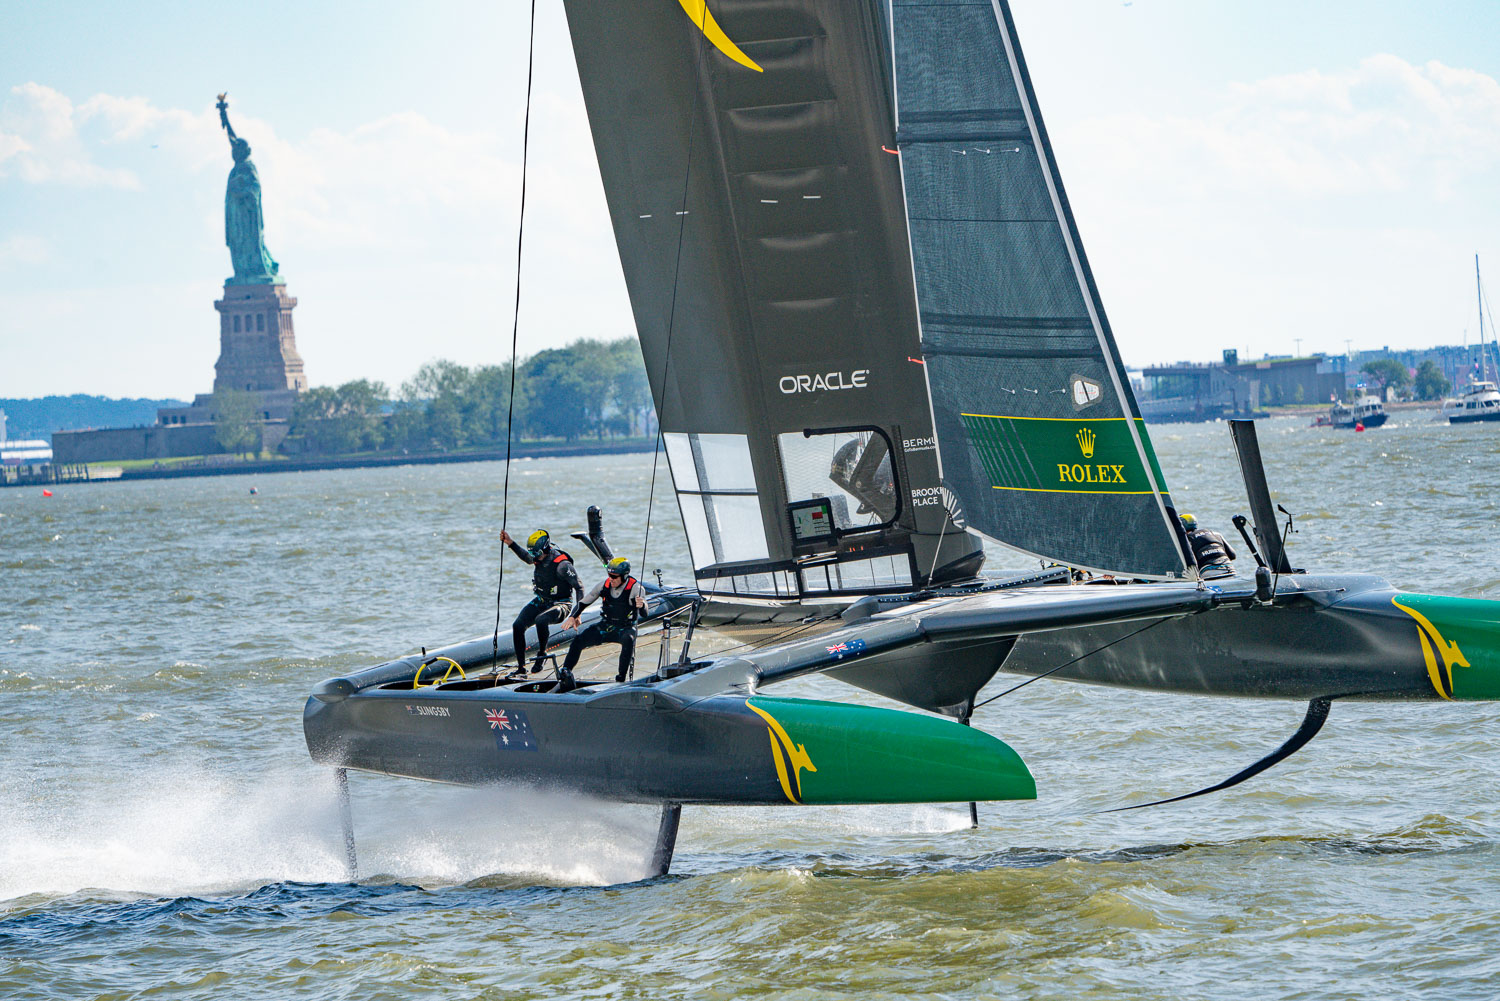 The crew of GB dancing around the deck of this Sail GP boat as shes riding her hydrofoils. The statue of liberty is in the background. Hudson river..jpg